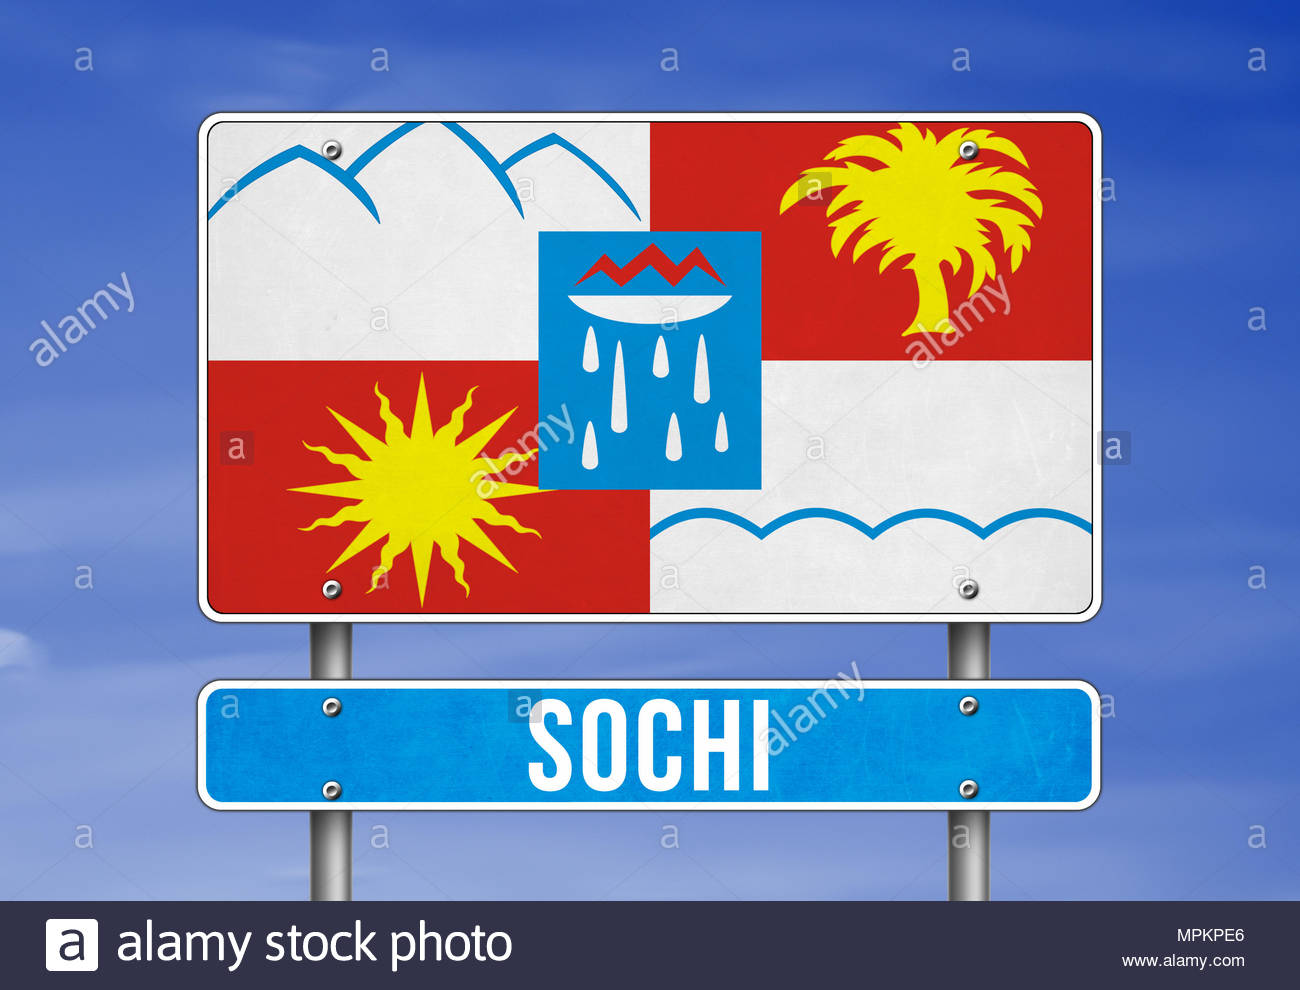 Welcome to Saint Sochi in Russia - Stock Image